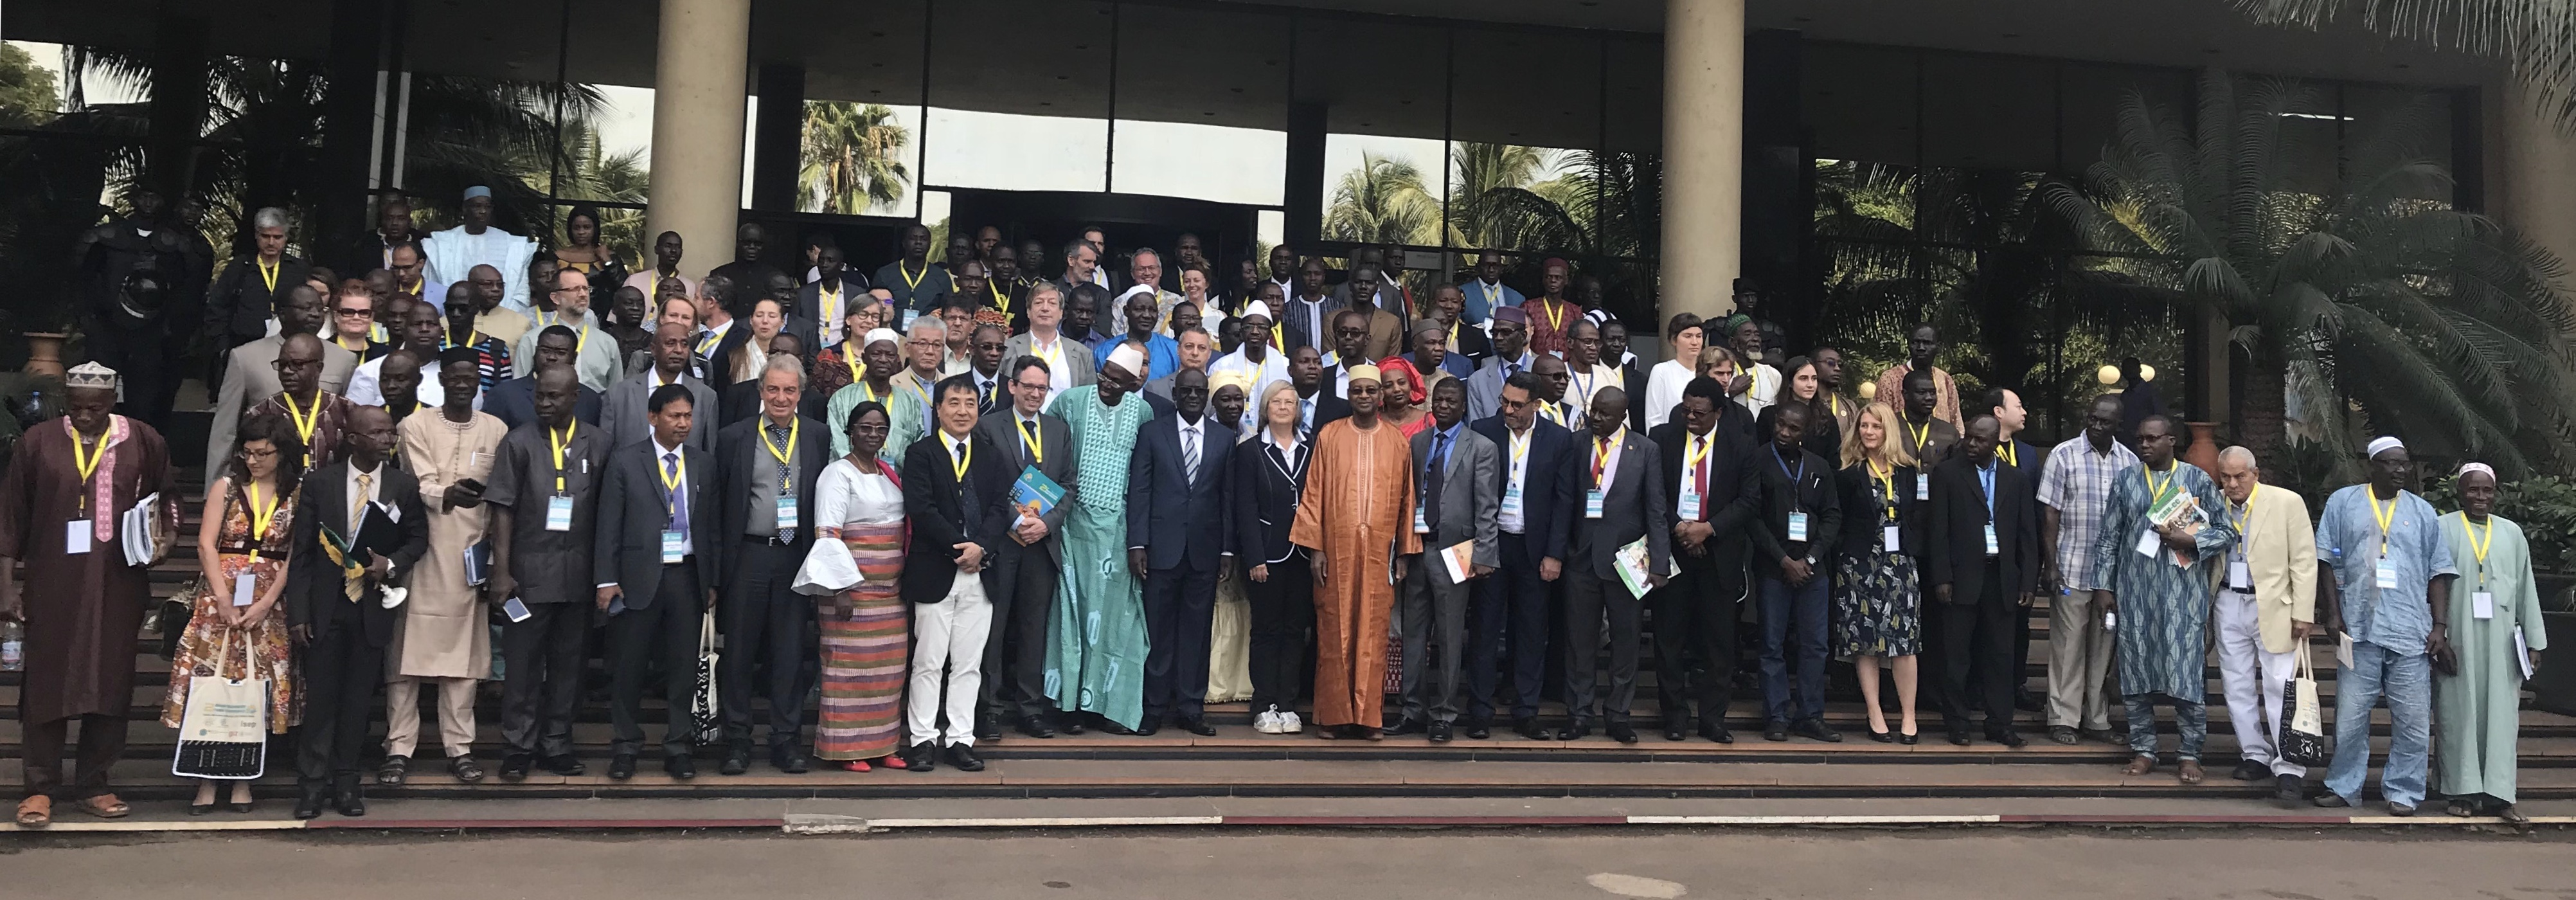 WCPC2018 participants including the Malian Minister of Energy and Water